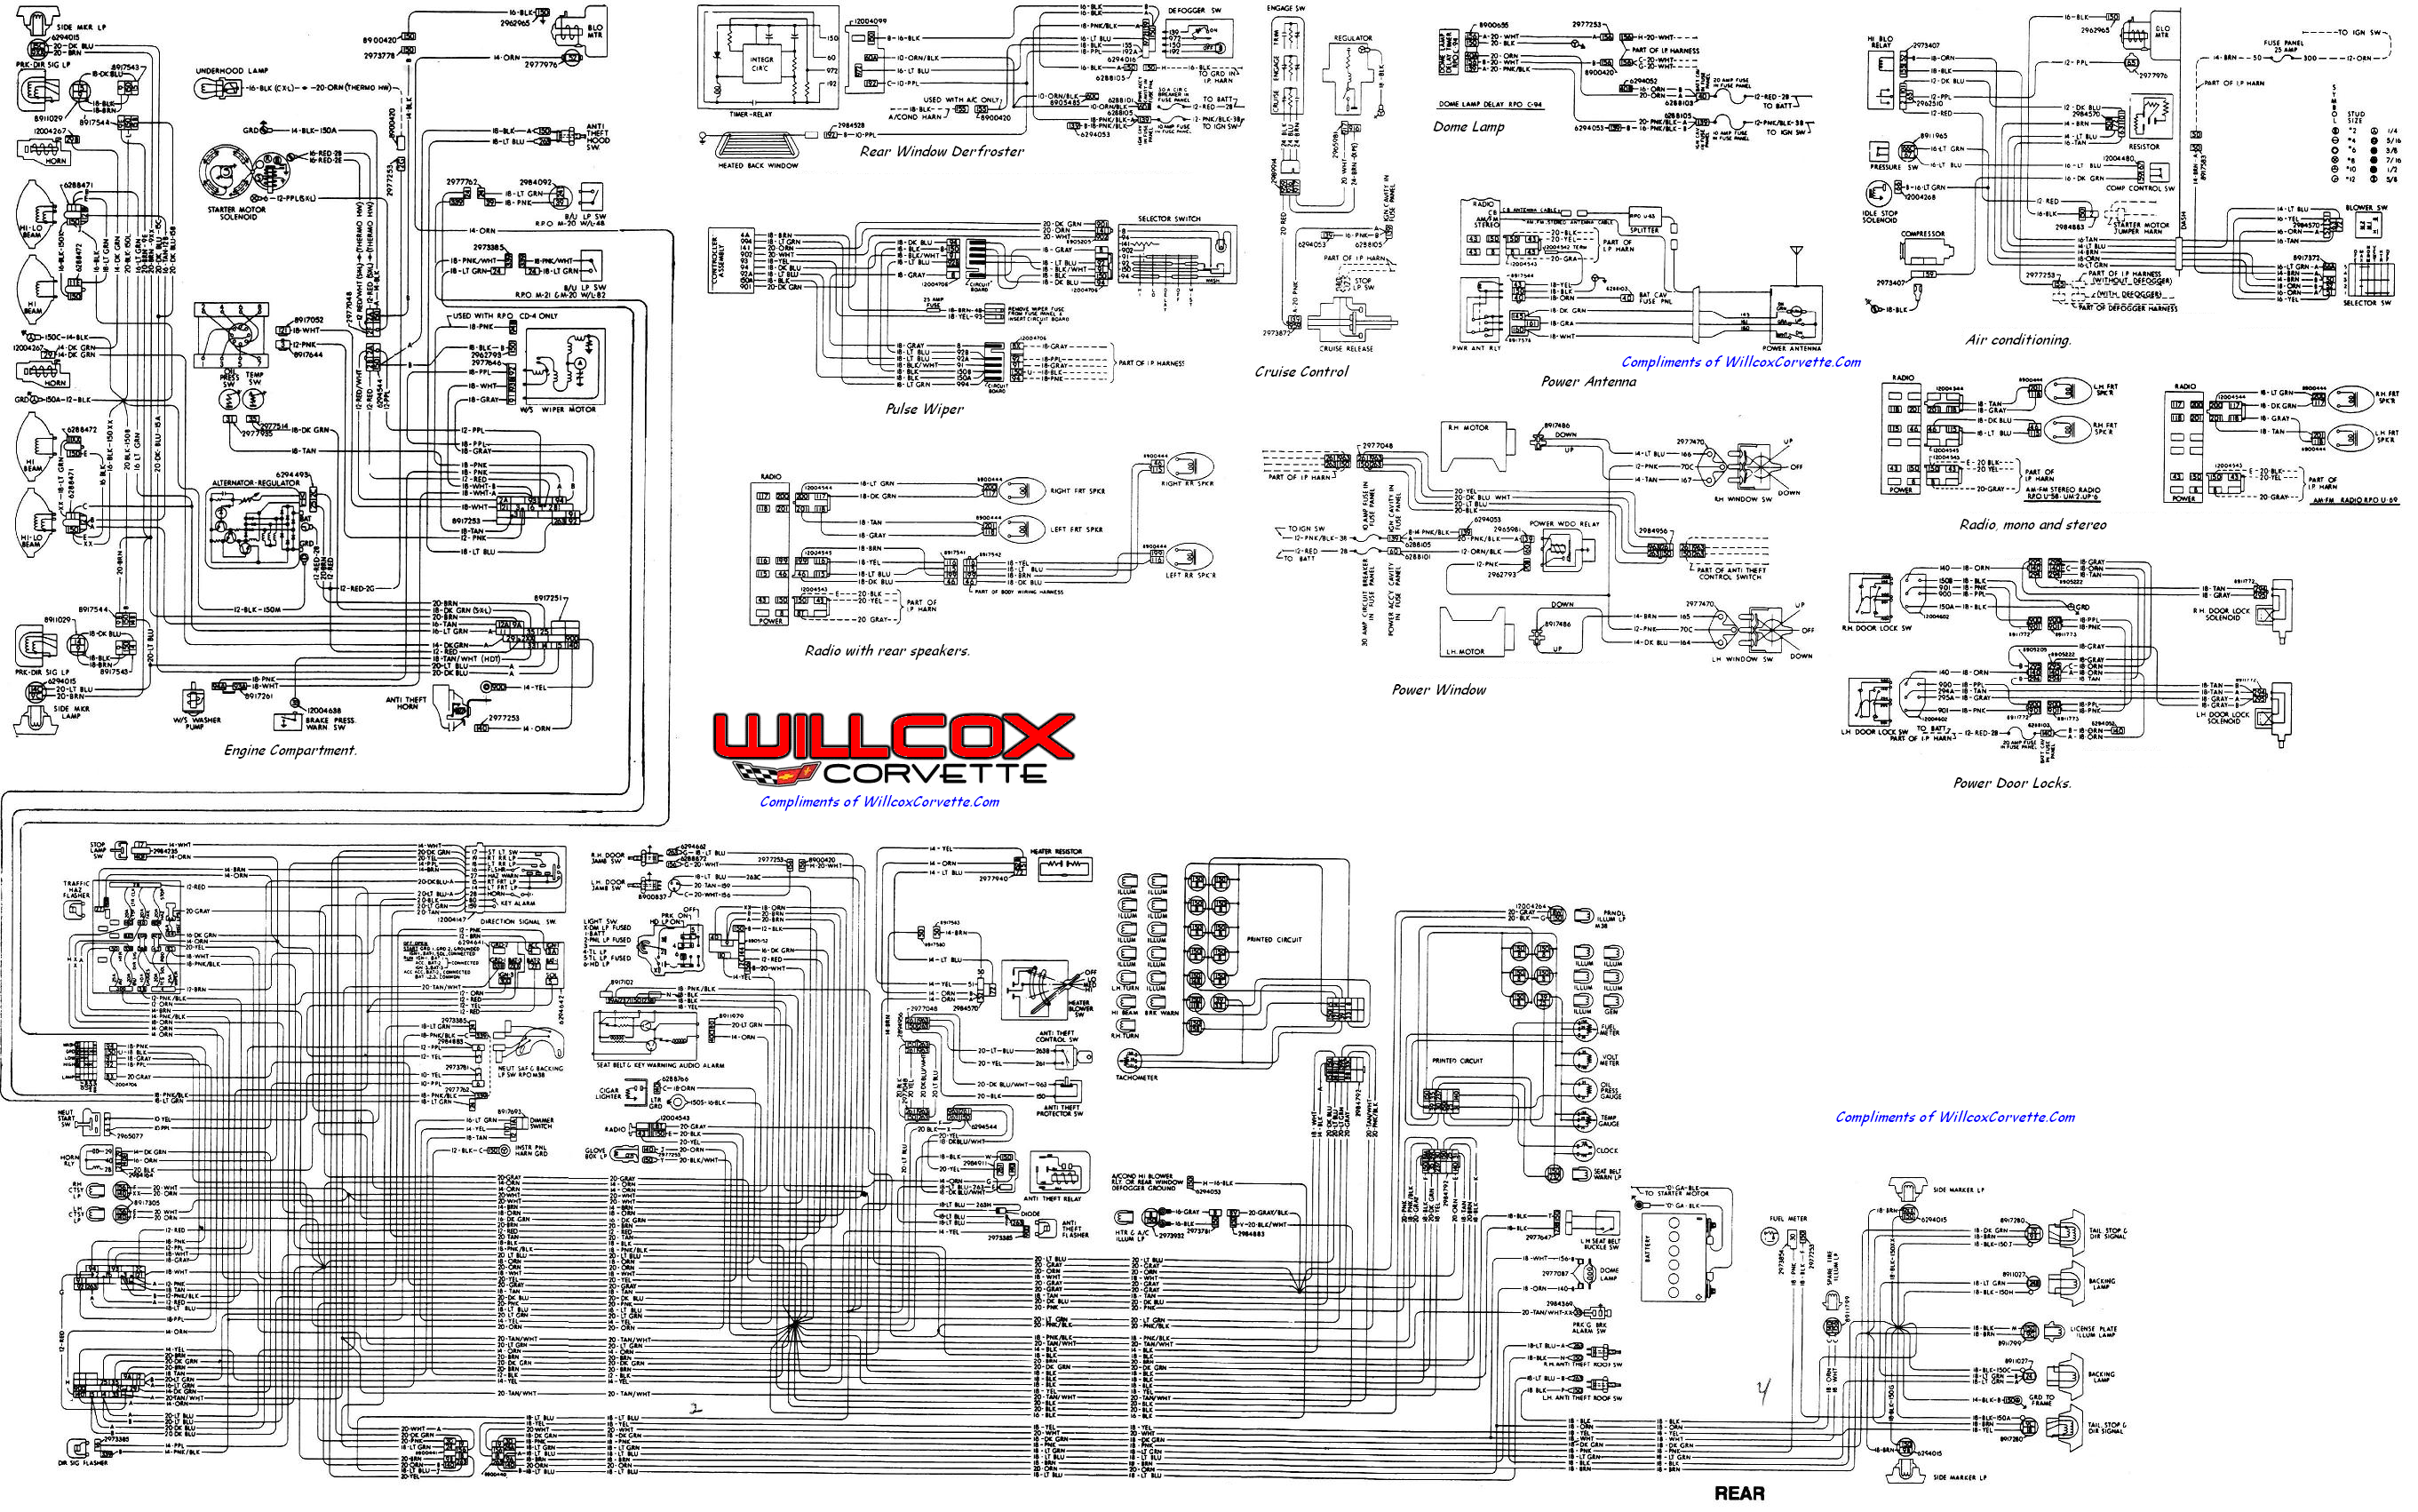 1978 corvette power door lock wiring diagram